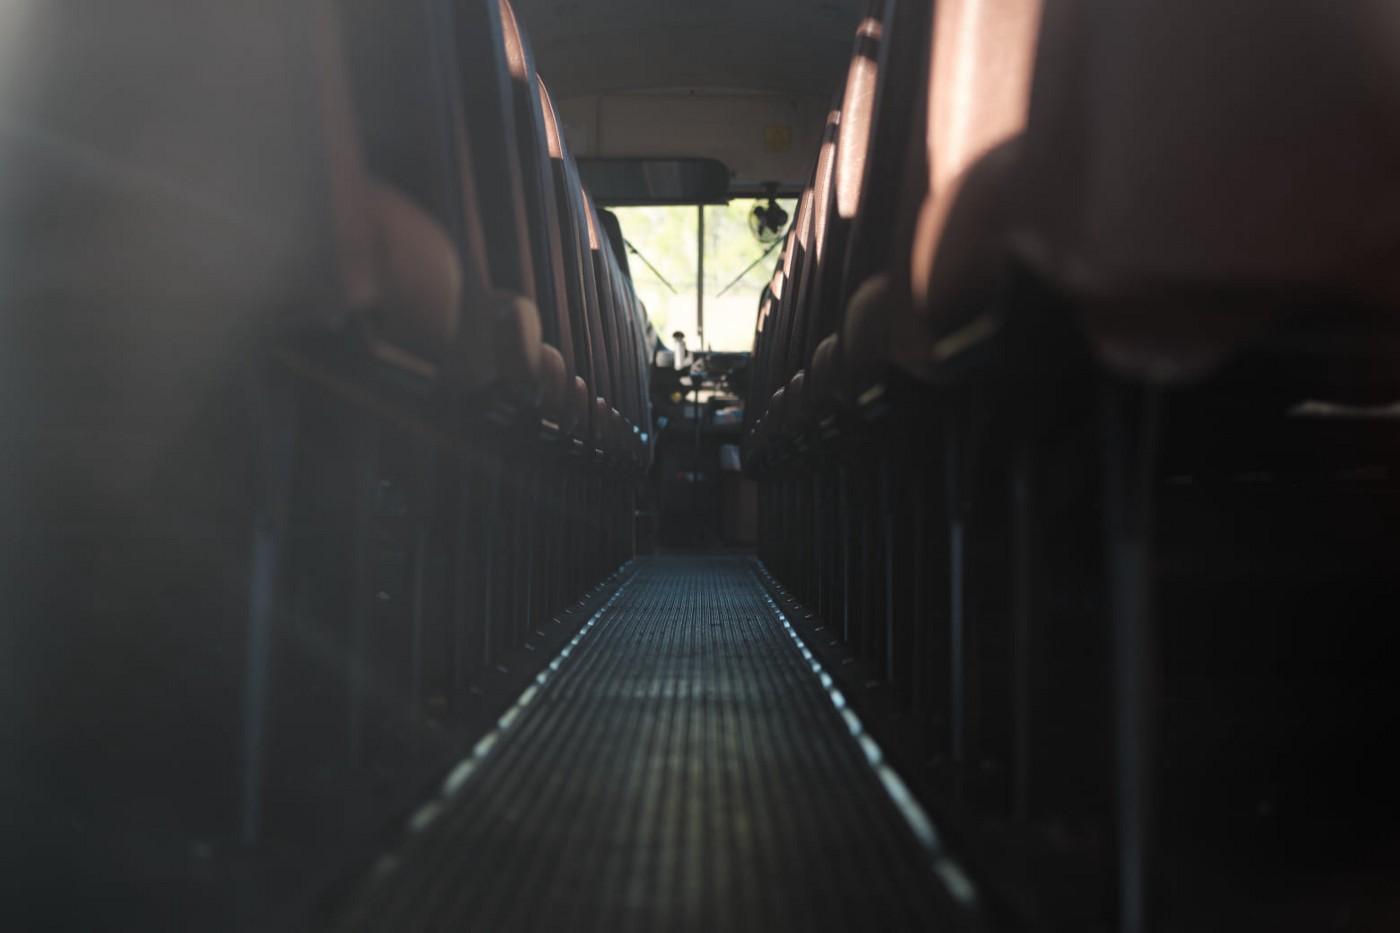 Staring down the aisle of a school bus